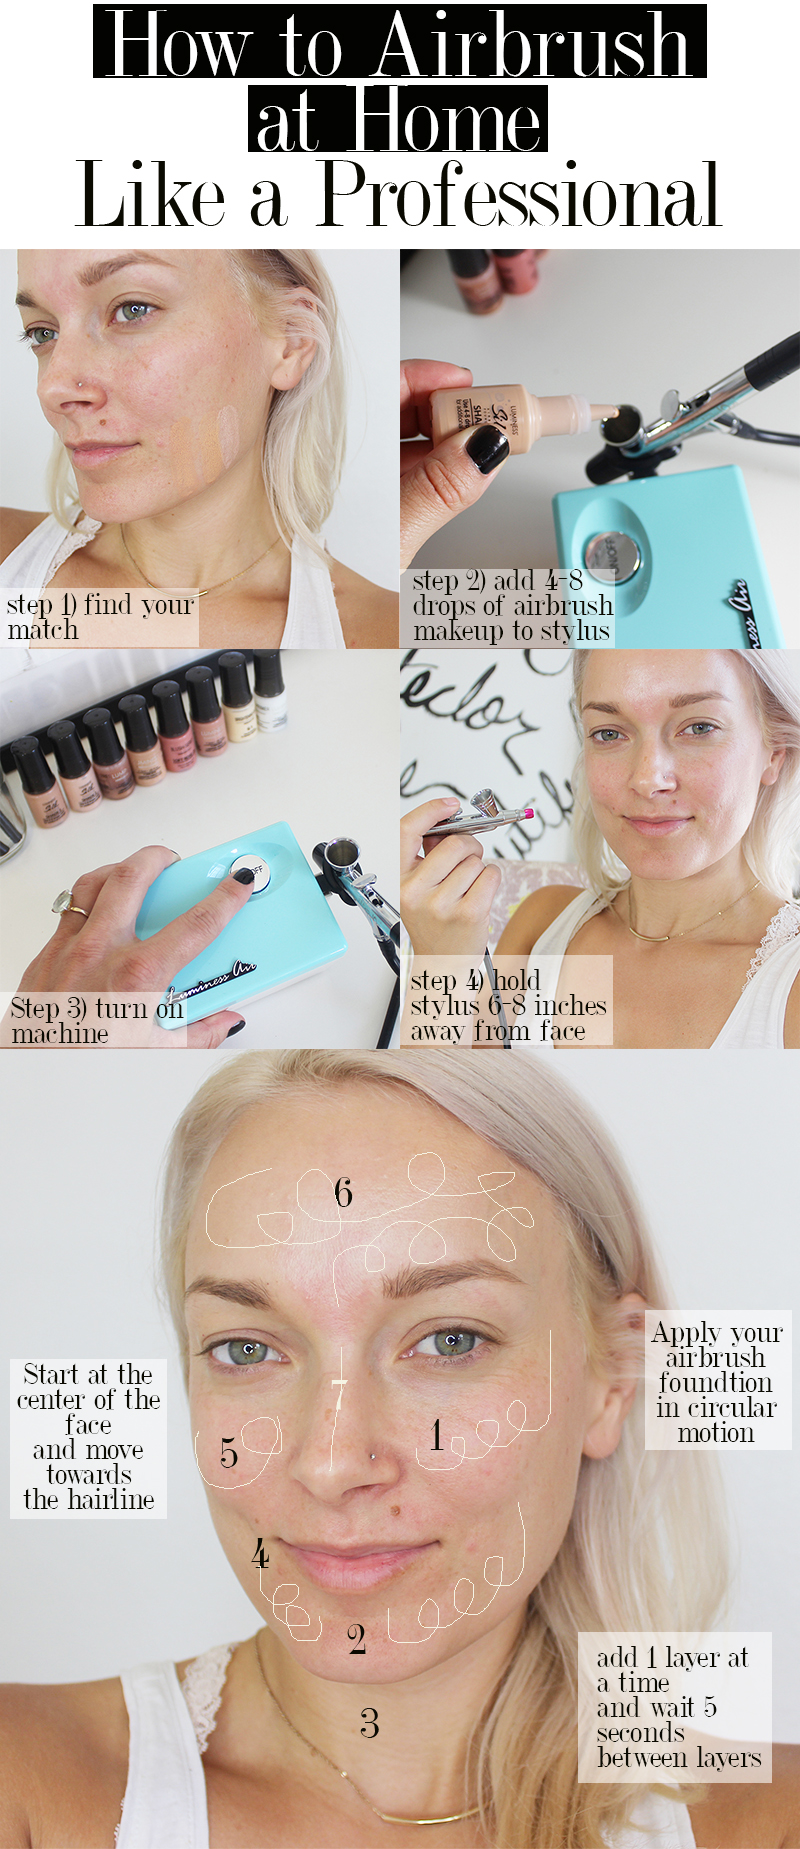 Airbrush Makeup Tips for 2020 |Makeup Tips For Airbrush